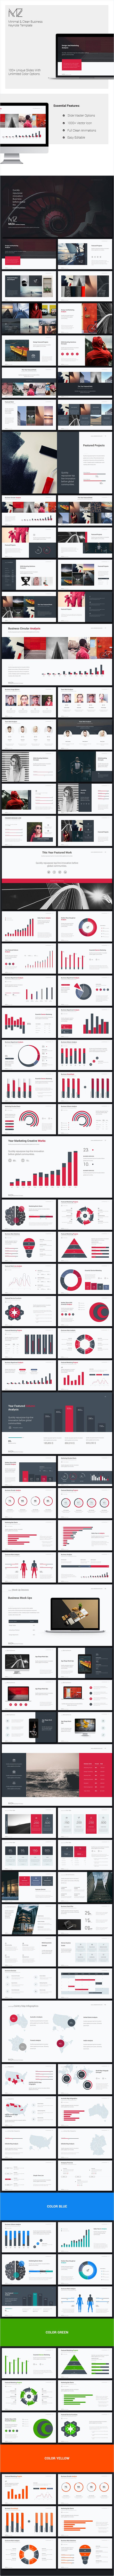 MIZA Multipurpose Clean Template  Get a modern Keynote Presentation that is beautifully designed and functional. This slides comes with infographic elements, charts graphs and icons.  This prese...